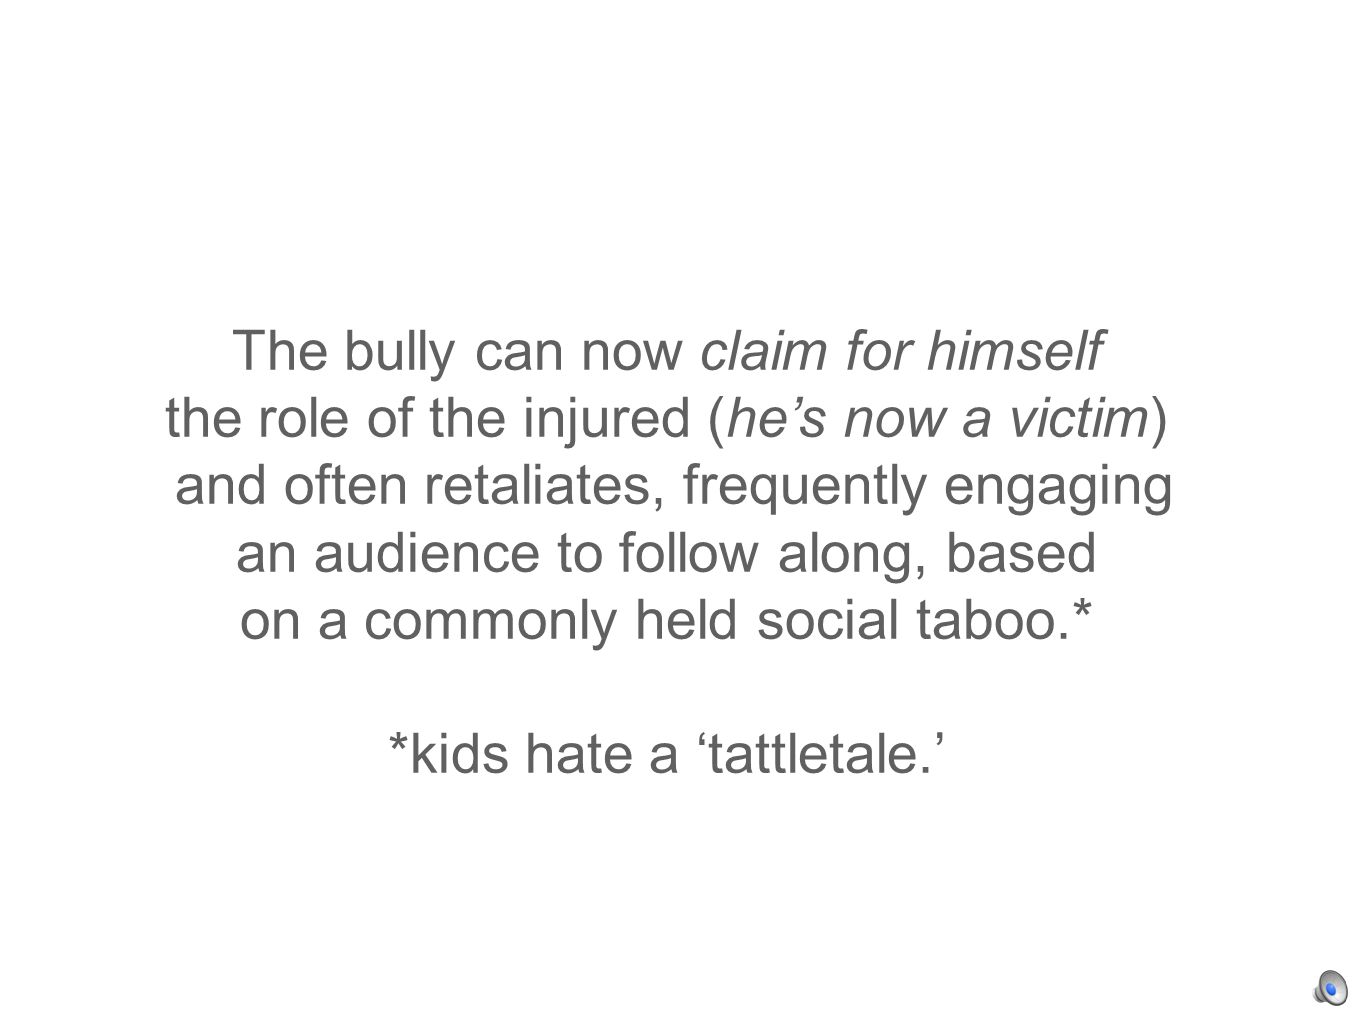 The bully can now claim for himself the role of the injured (hes now a victim) and often retaliates, frequently engaging an audience to follow along, based on a commonly held social taboo.* *kids hate a tattletale.